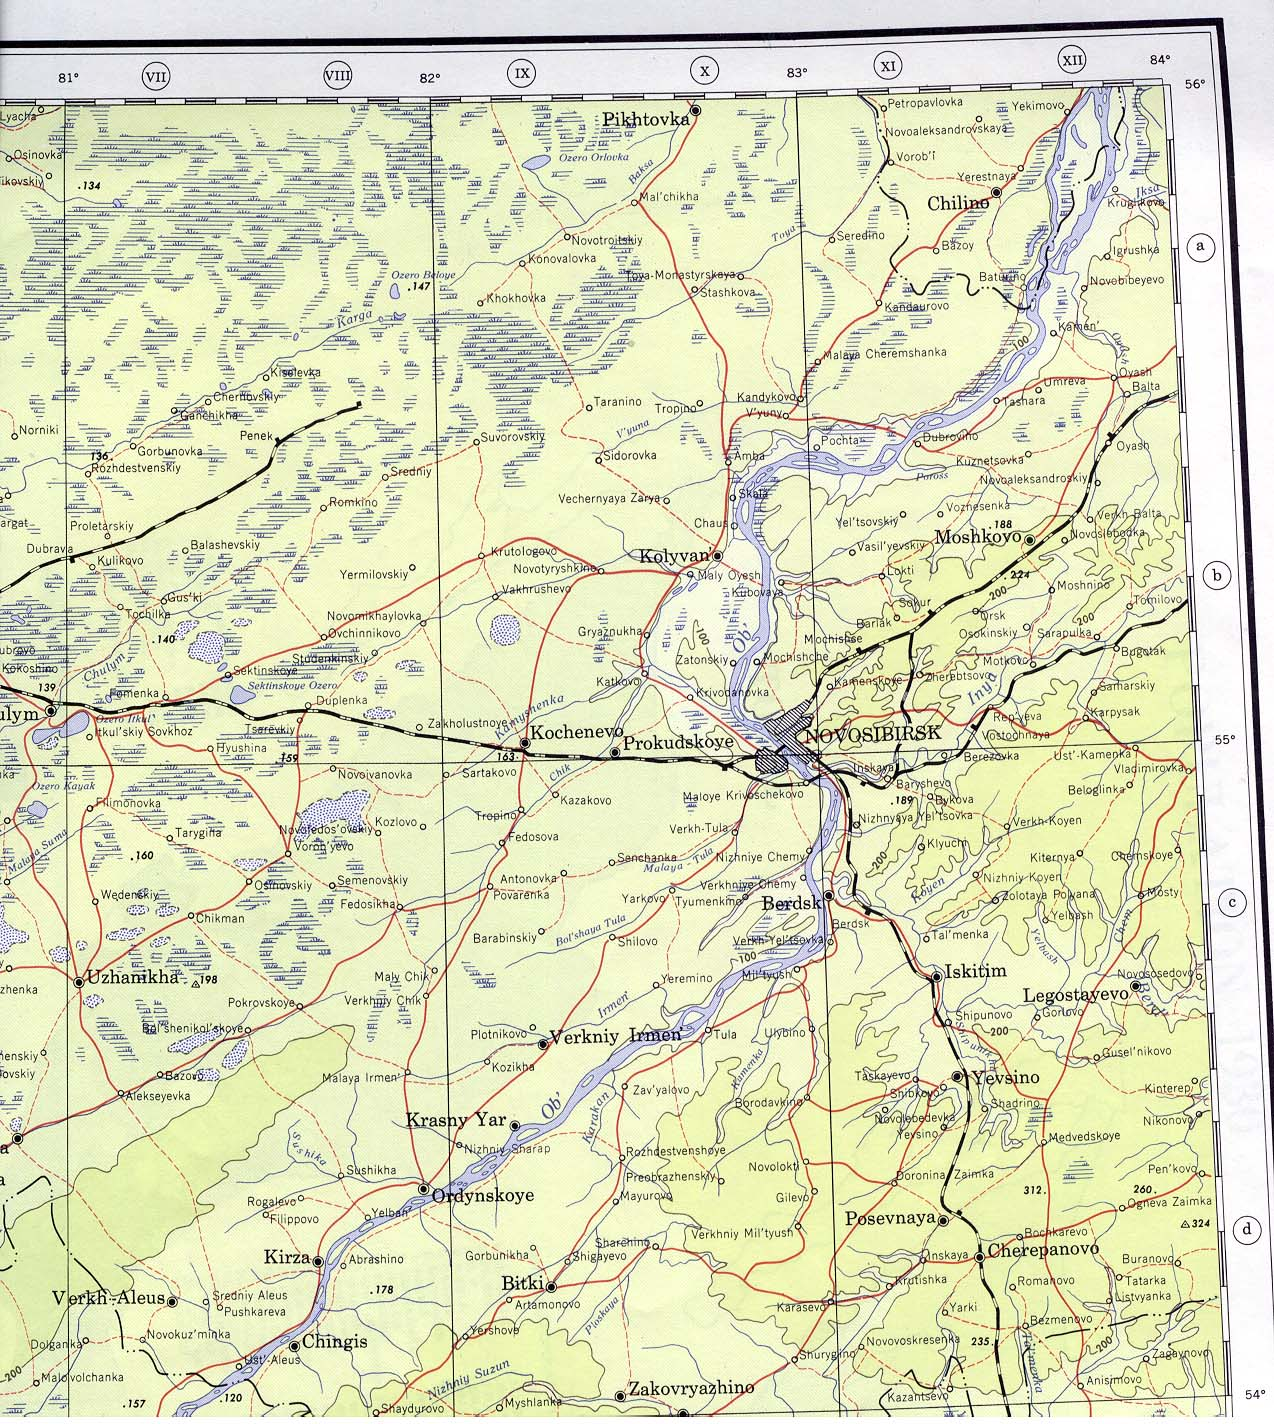 Us Army Map Service Author Published By University Of Texas - Us-army-topographic-maps